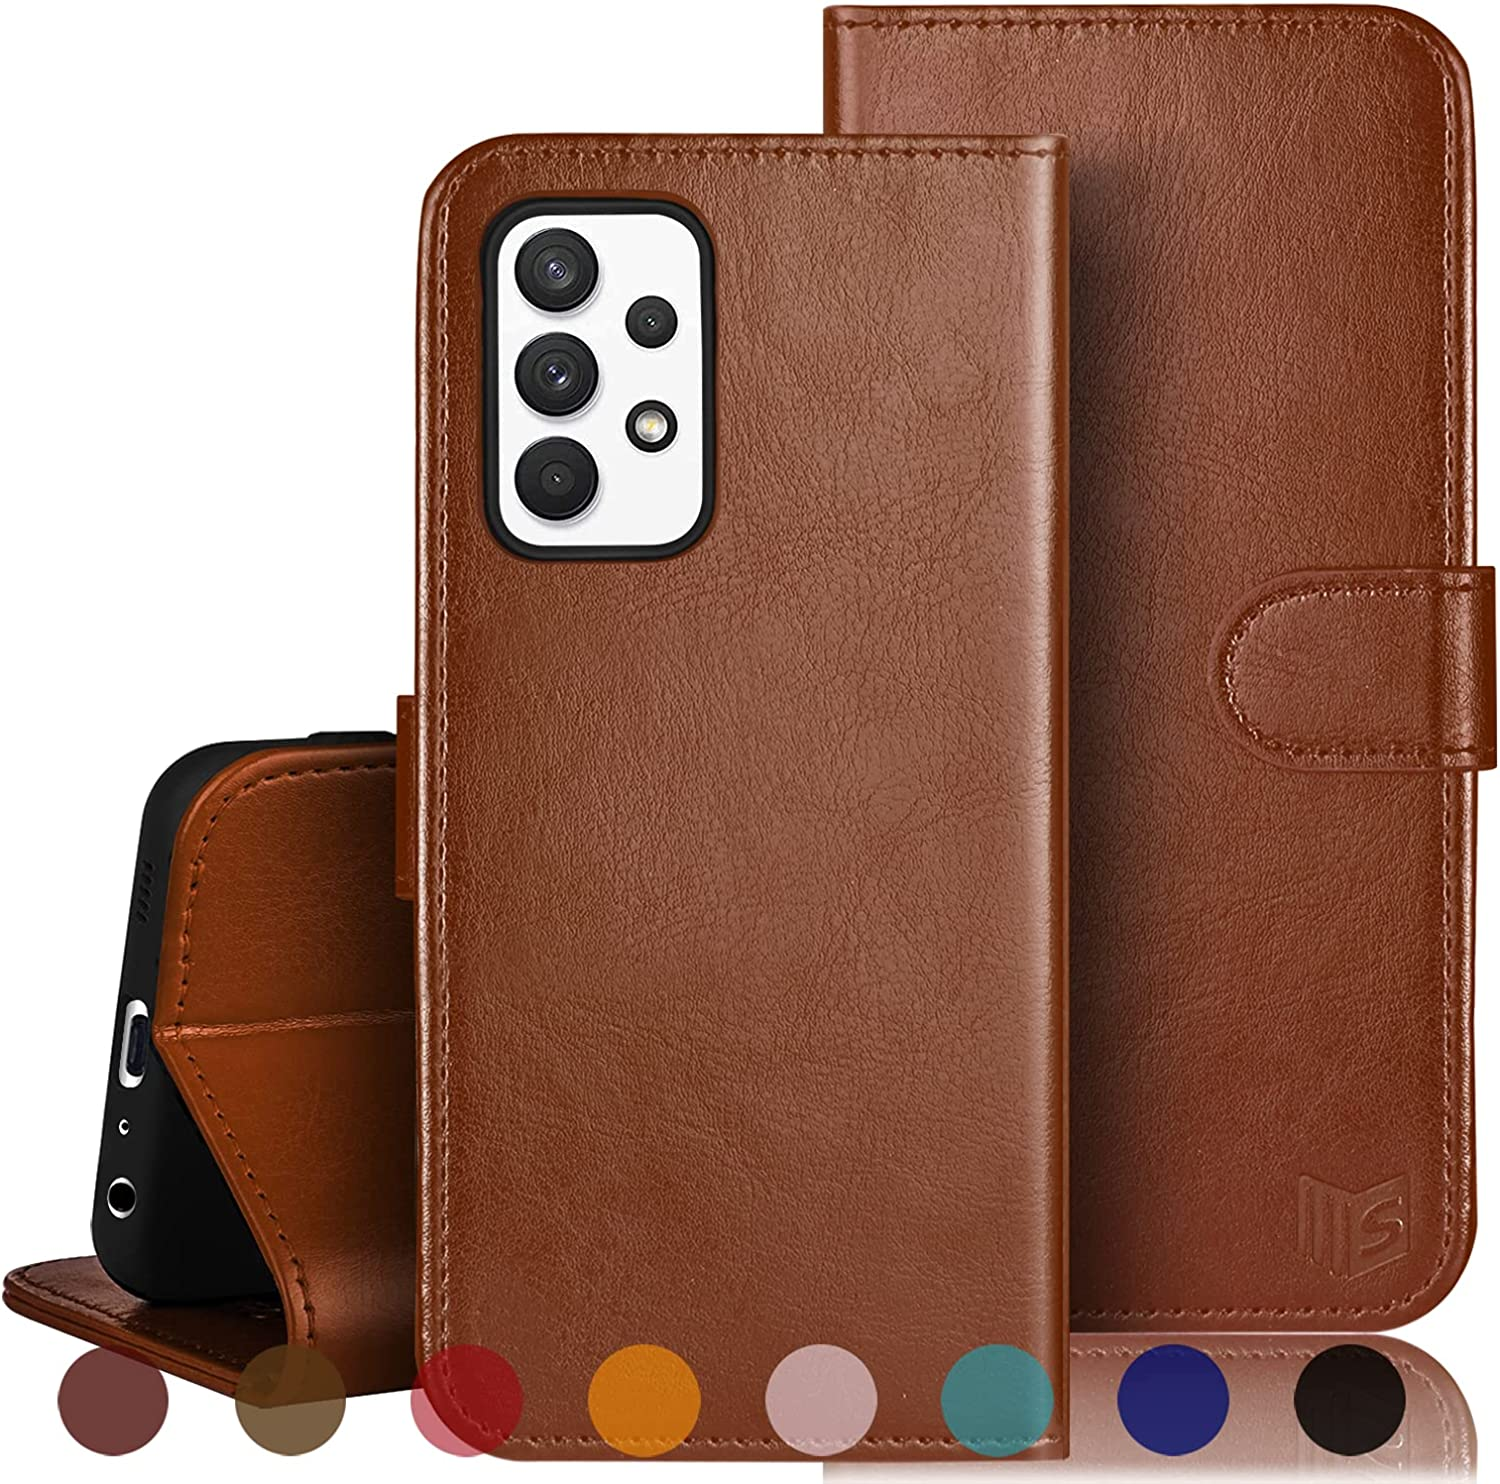 SUANPOT for Samsung Galaxy A32 5G Wallet case RFID Blocking Credit Card Holder, Flip Book Phone case Folio Cover for Women Men for Samsung A32 case Wallet Cellphone PU Leather case Light Brown